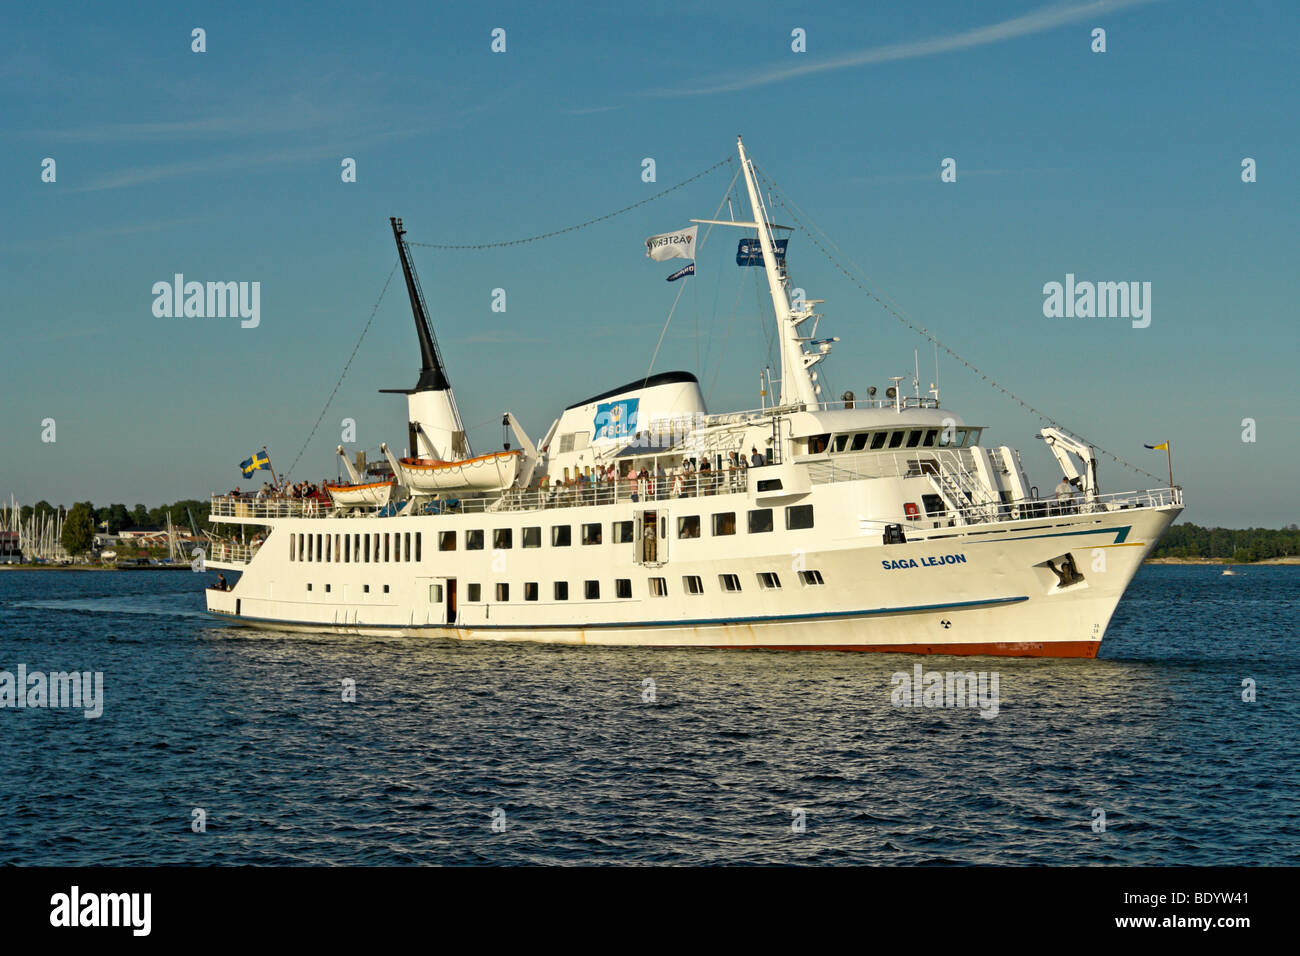 The Swedish archipelago cruise ship Saga Lejon arrives at Vastervik at the end of a day cruise from Nykoping - Stock Image